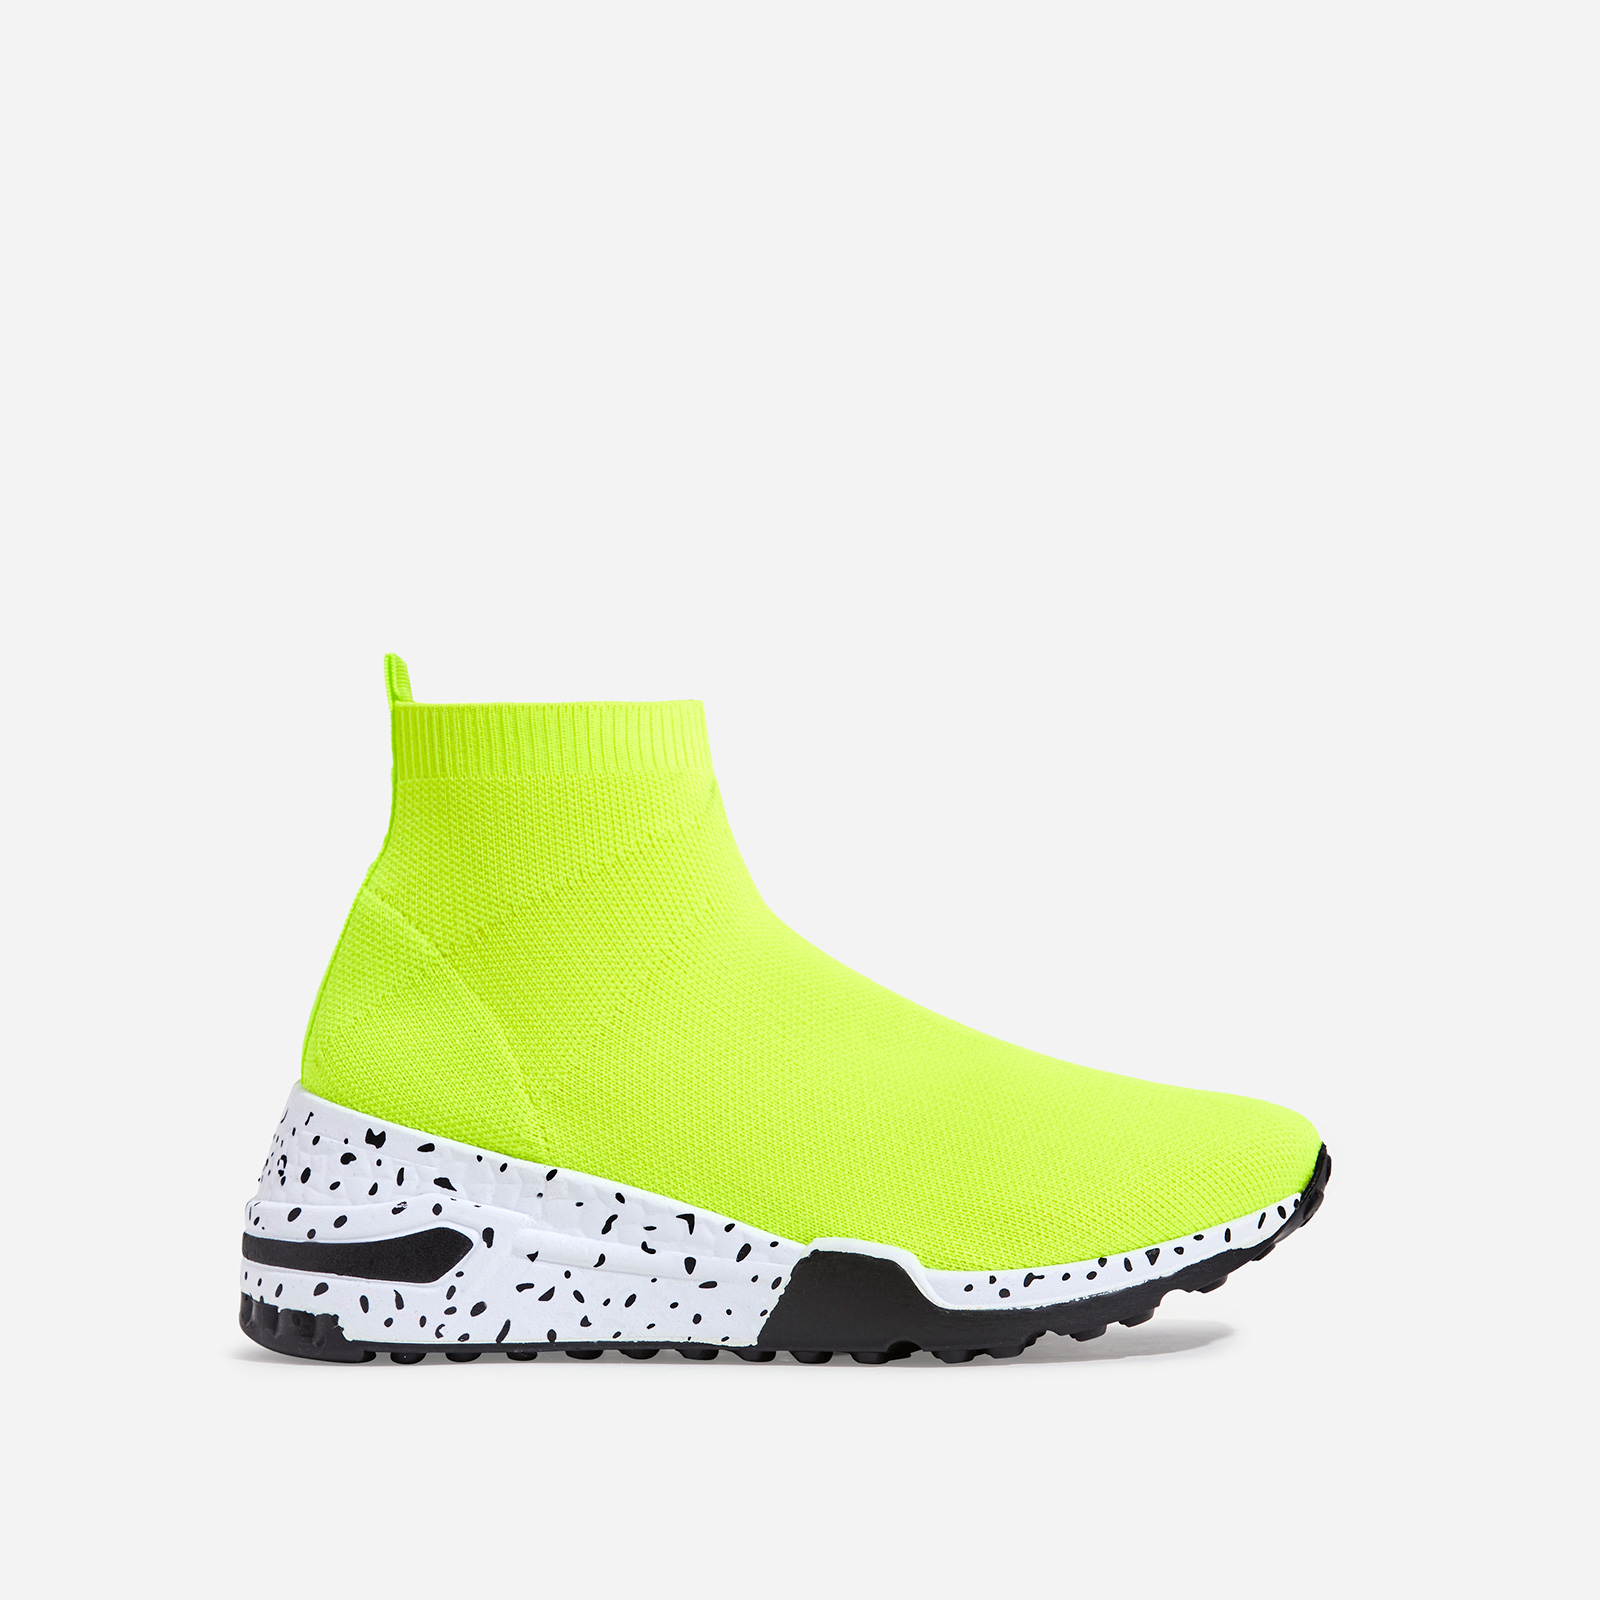 Mint Speckle Print Chunky Sole Sock Sneaker In Lime Green Knit